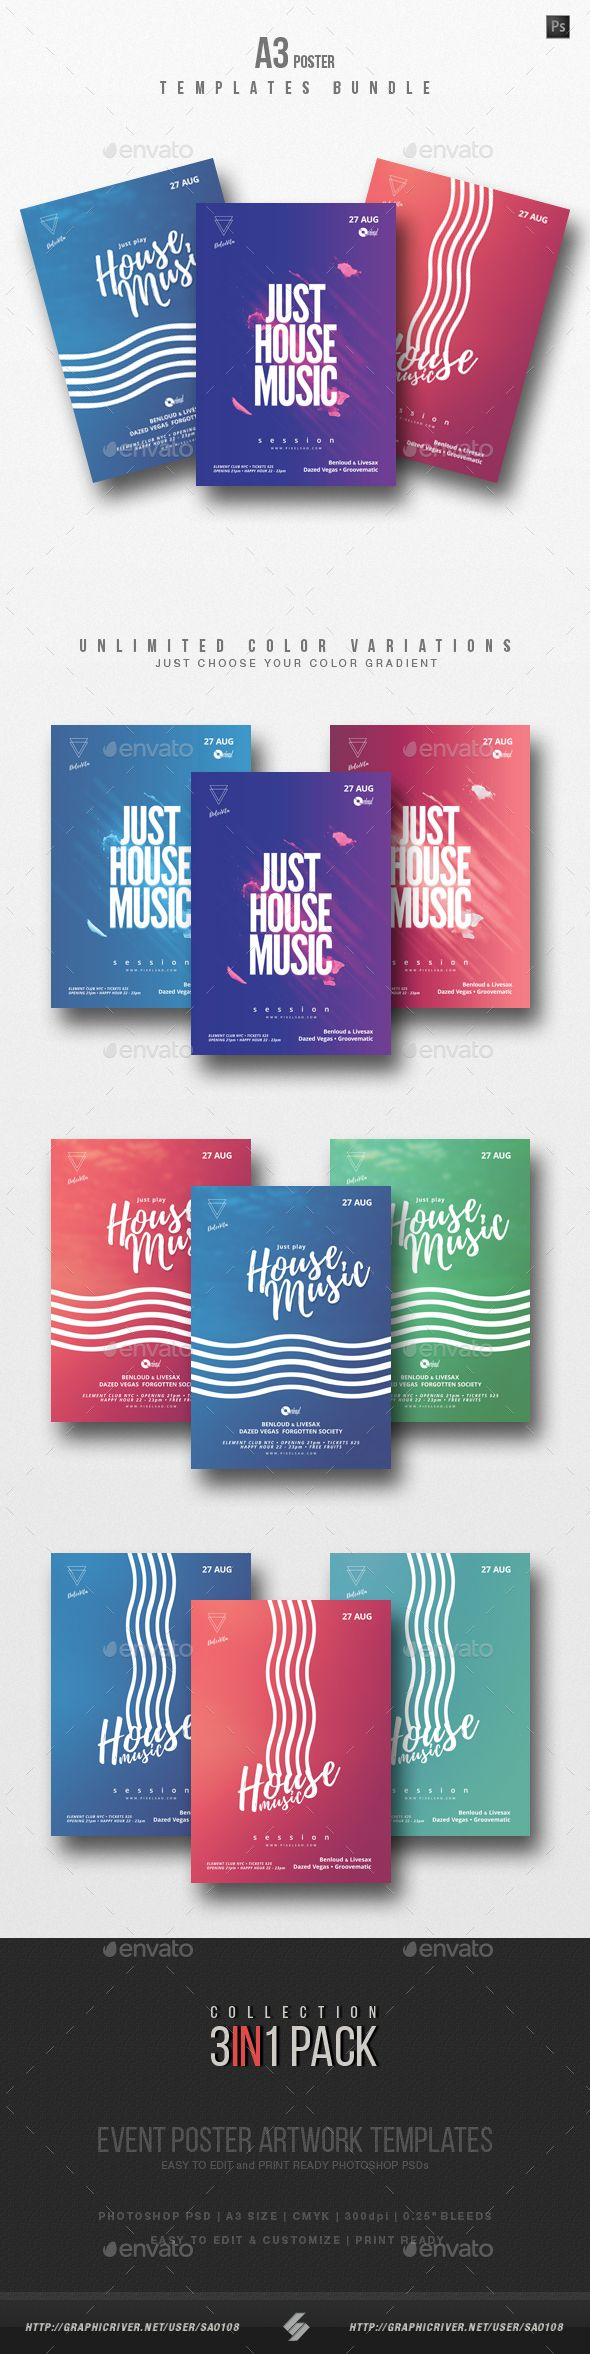 Creative Party Flyers Collection – Pack of 3 creative A3 size posters / flyers for different styles of music parties, events or sessions like deep house, progressive, electro, house music, dubstep, chillout, electronica, lounge, tech-house, techno, chillstep, minimal, nudisco and other DJs summer parties.